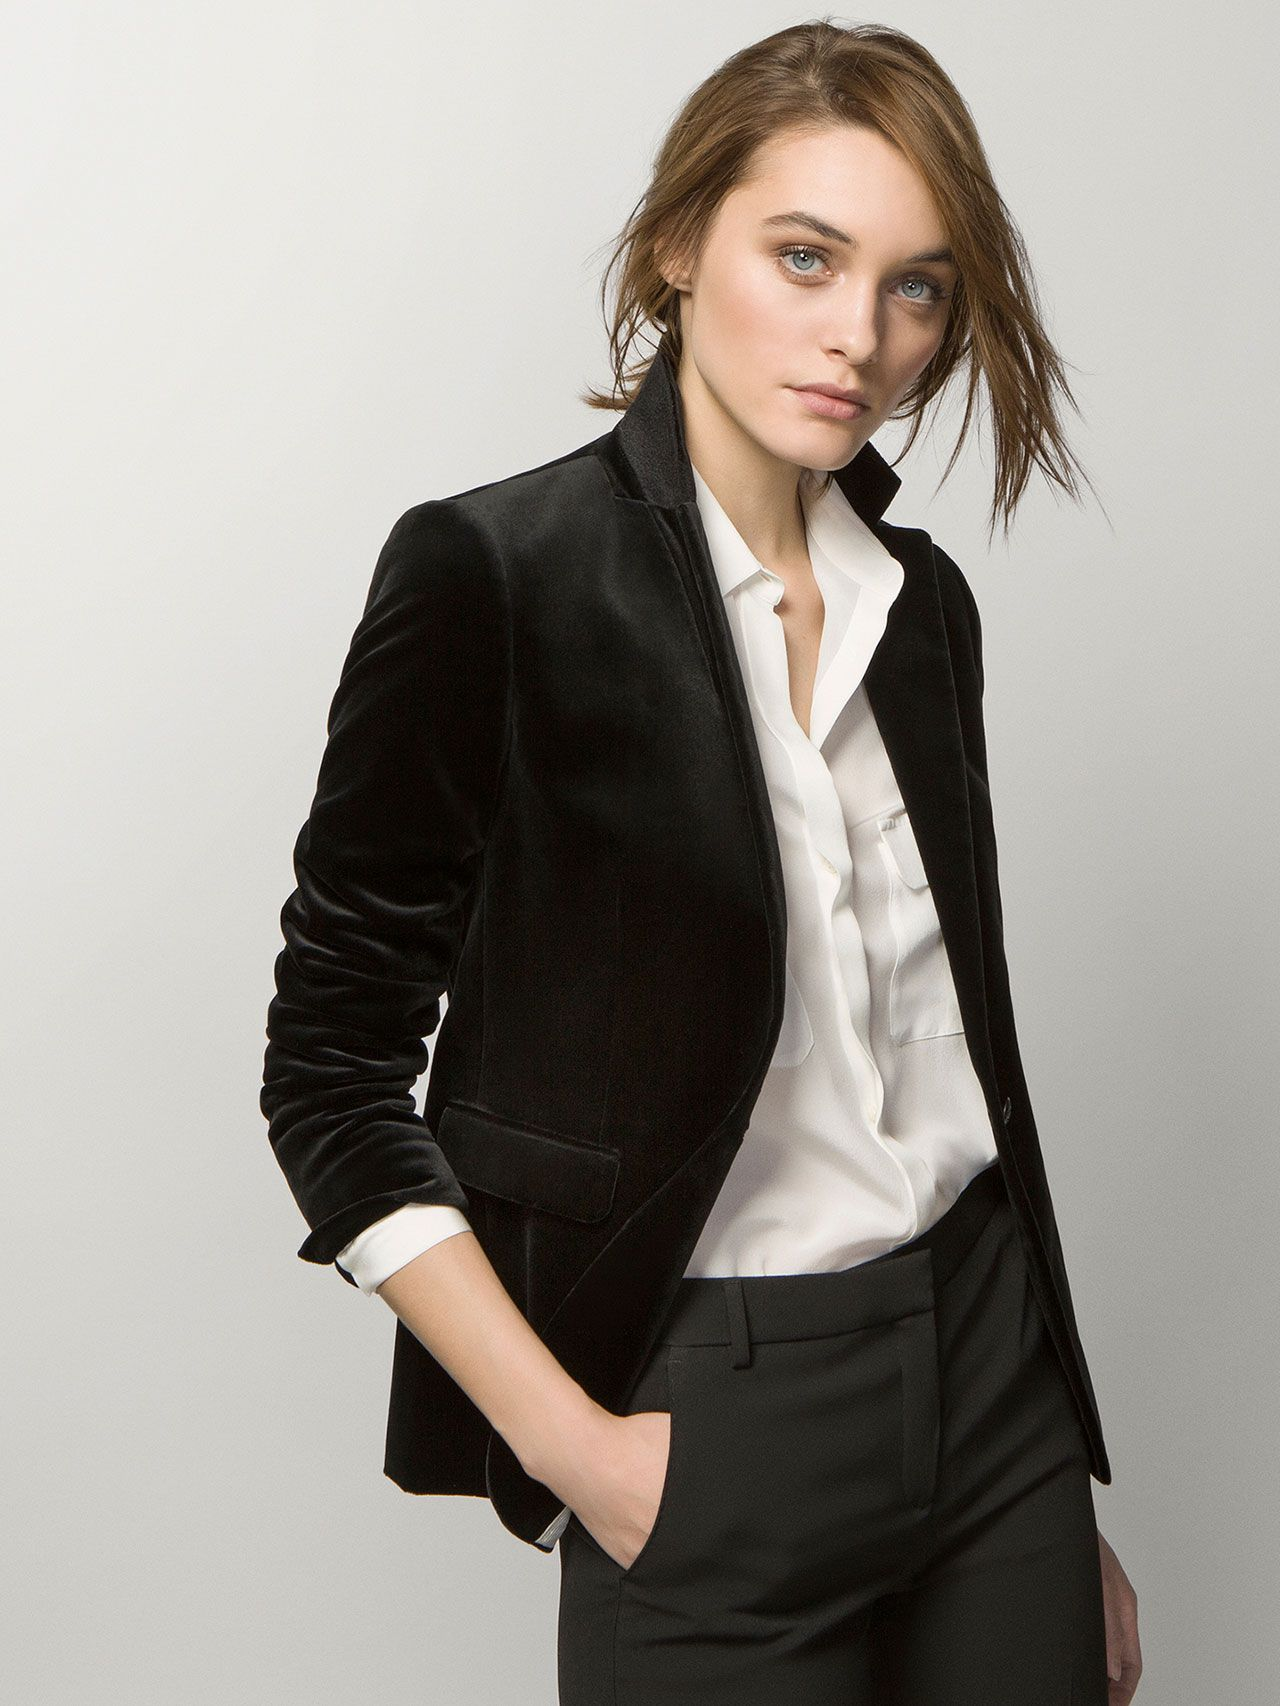 e45d9fbbb5550 Massimo dutti - BLACK VELVET JACKET Leather Jacket, Blazer, Jackets, Fashion,  Studded